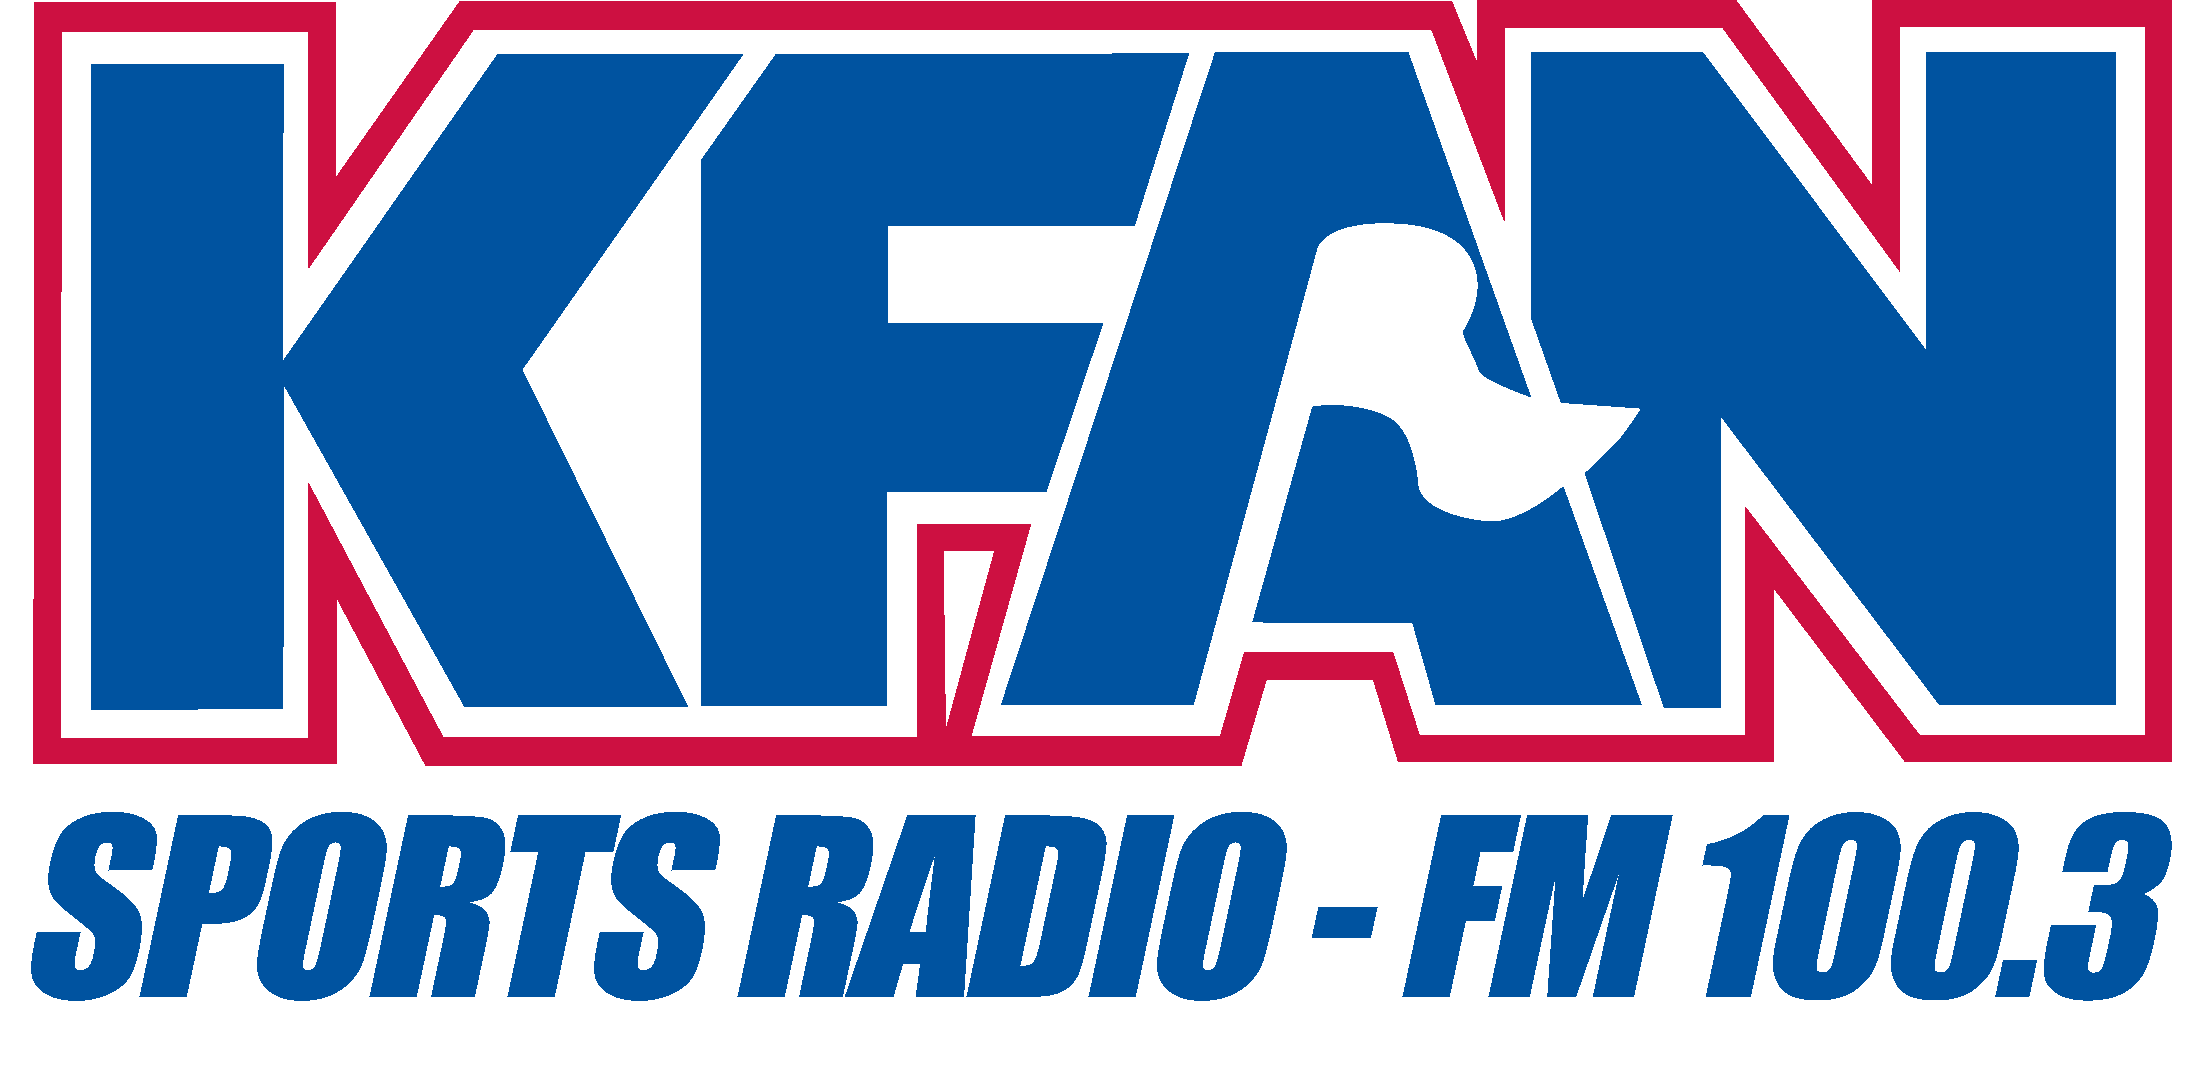 KFAN FM 100 3 - Minneapolis/St  Paul -- The Sports Leader